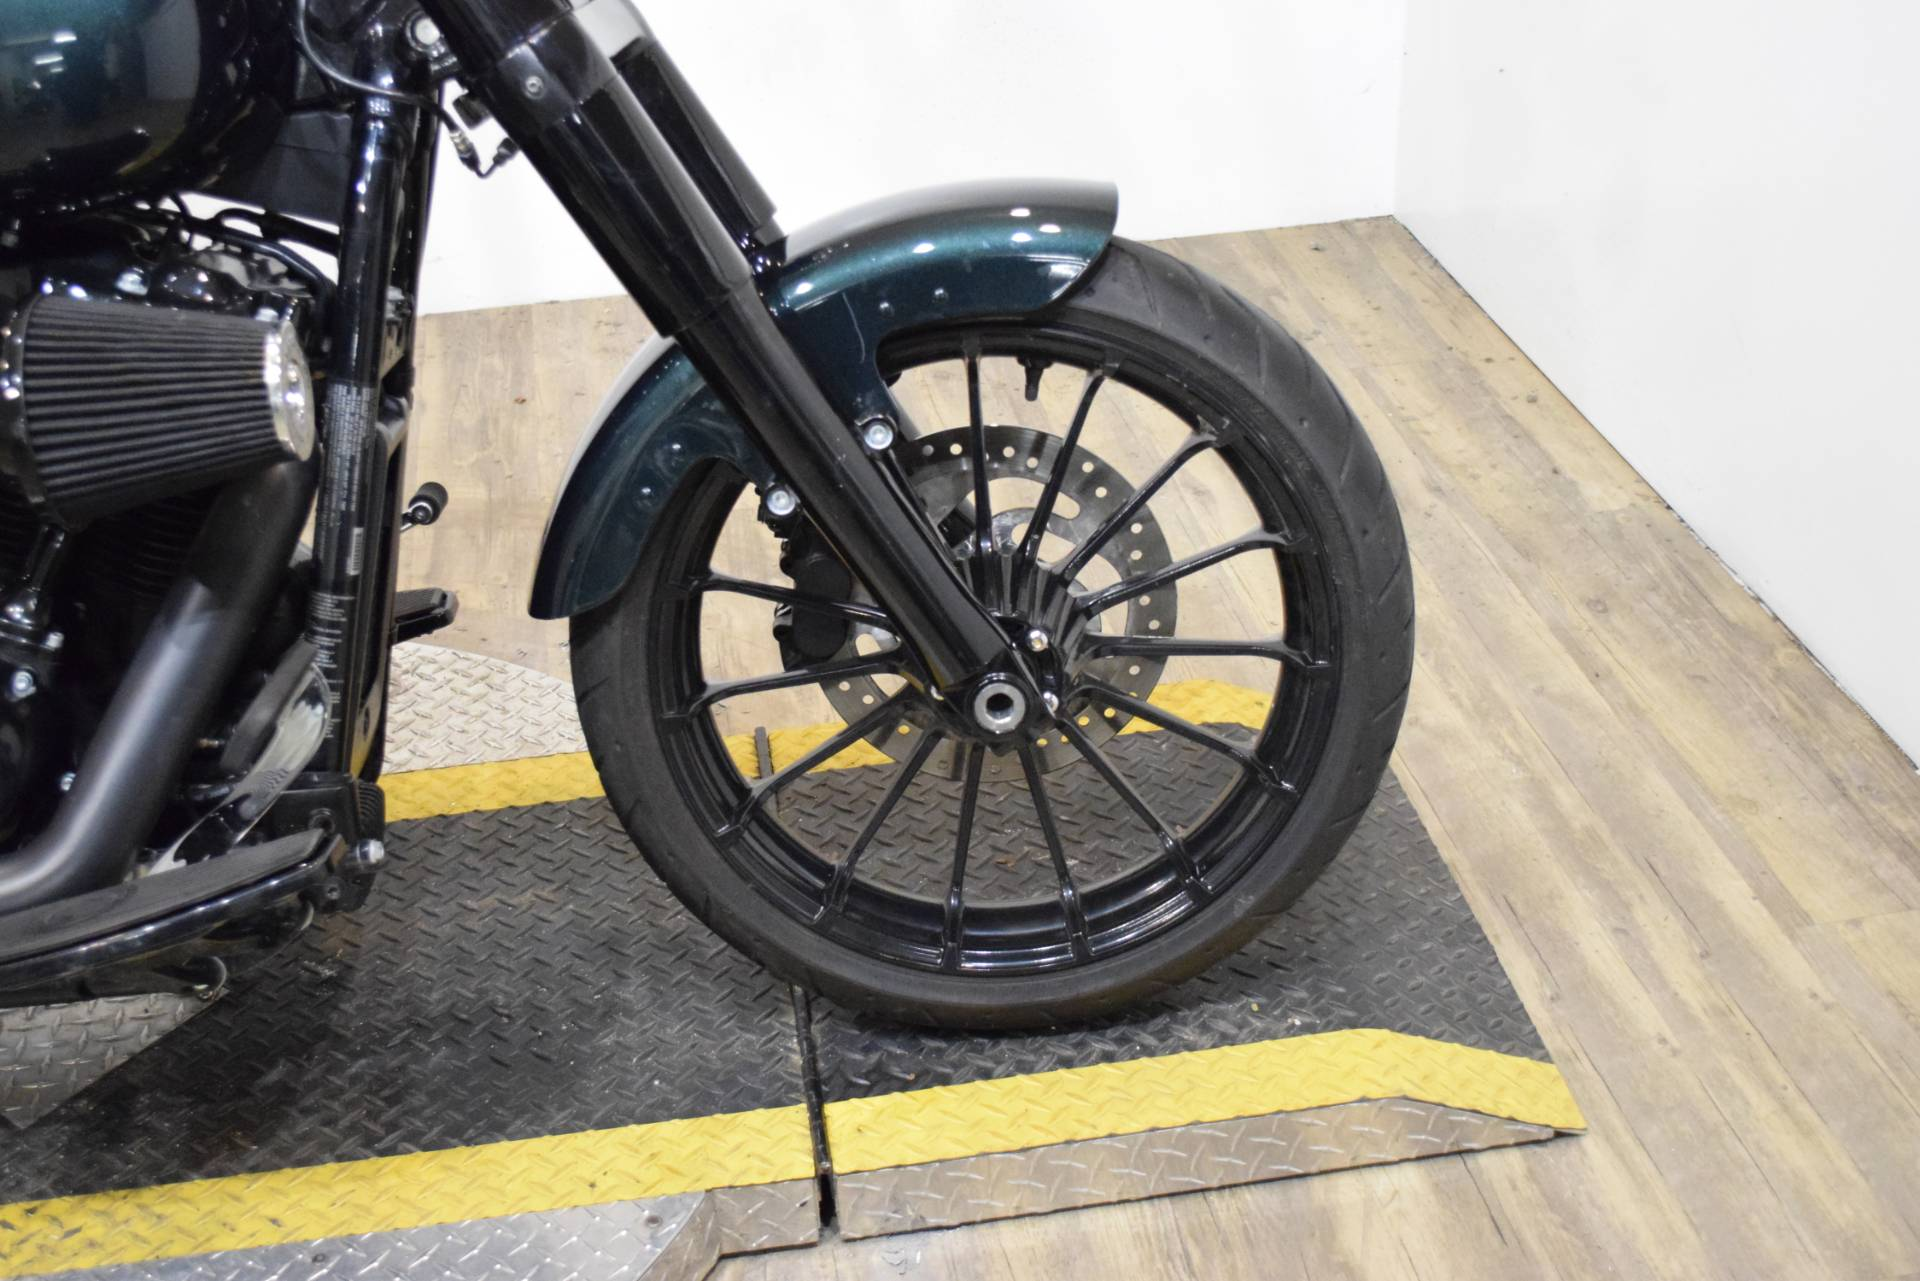 2018 Harley-Davidson Softail Slim in Wauconda, Illinois - Photo 2